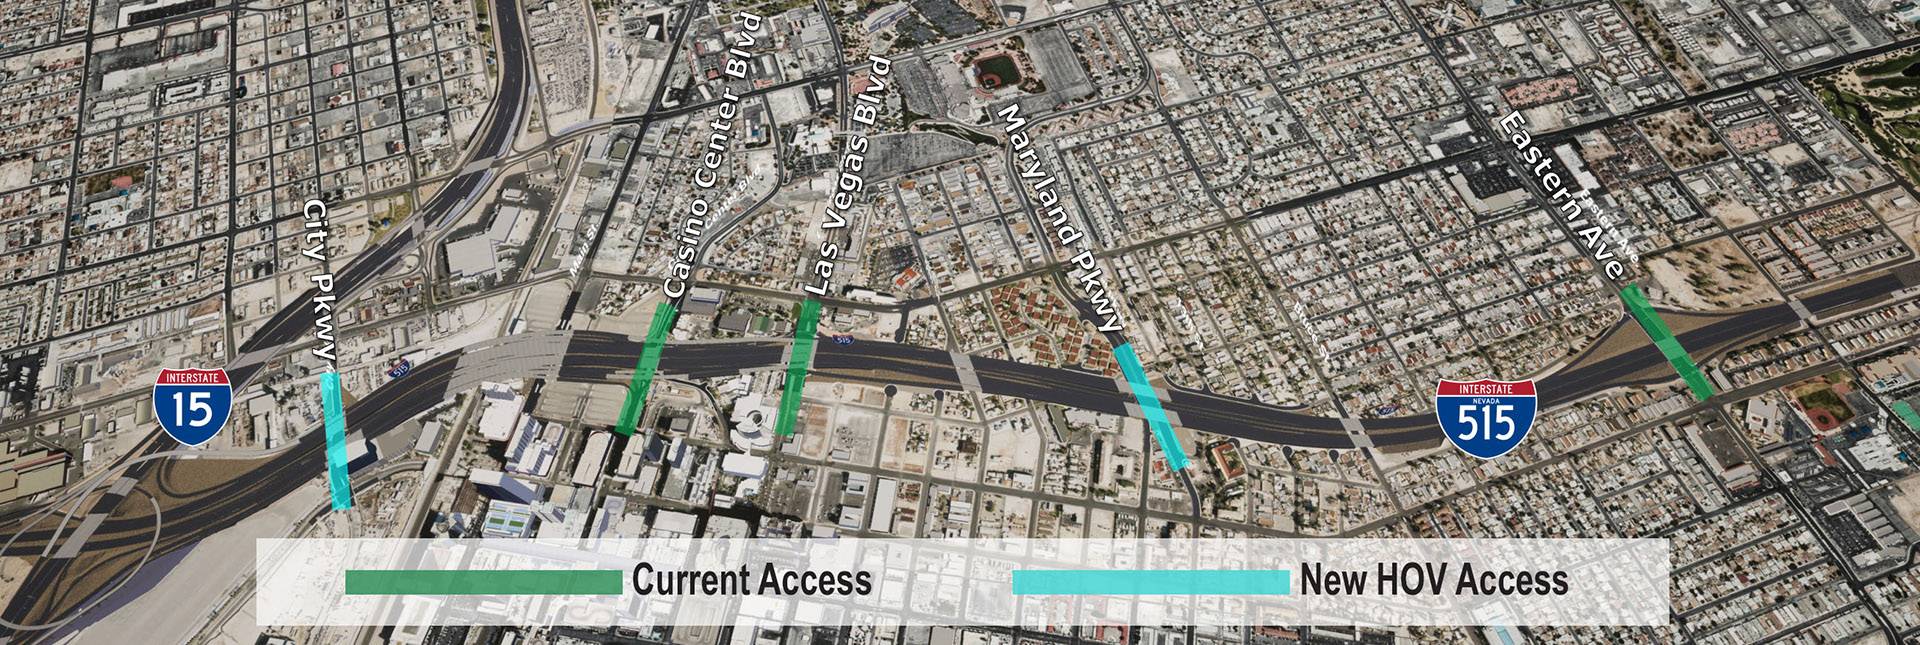 Map showing locations for new proposed HOV access points.